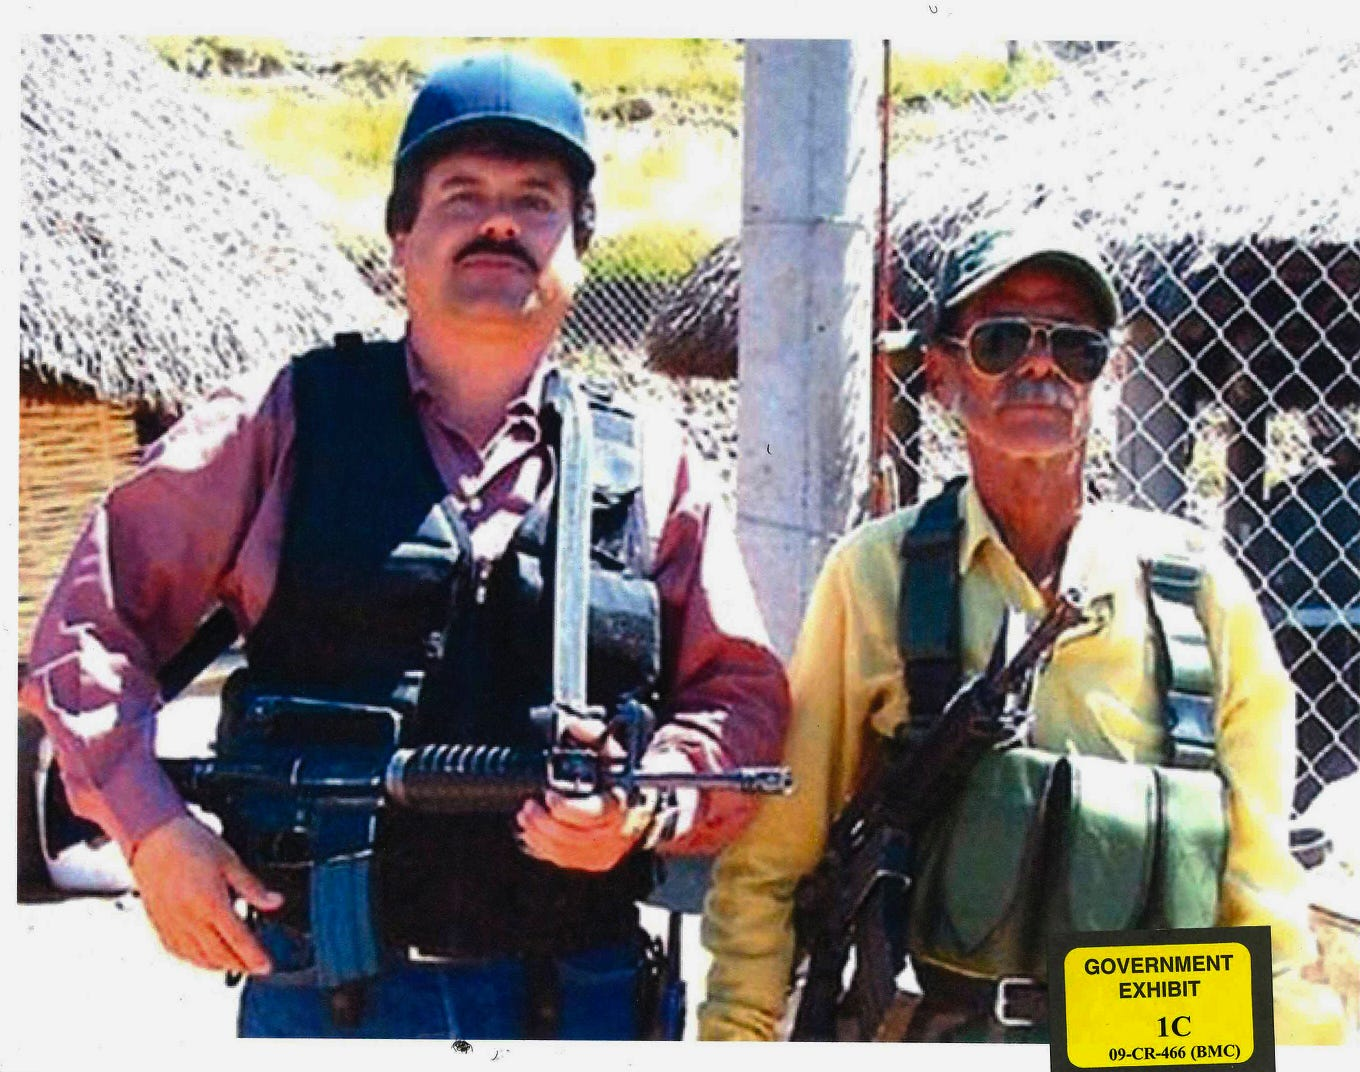 el chapo witness says alleged drug lord ordered one enemy